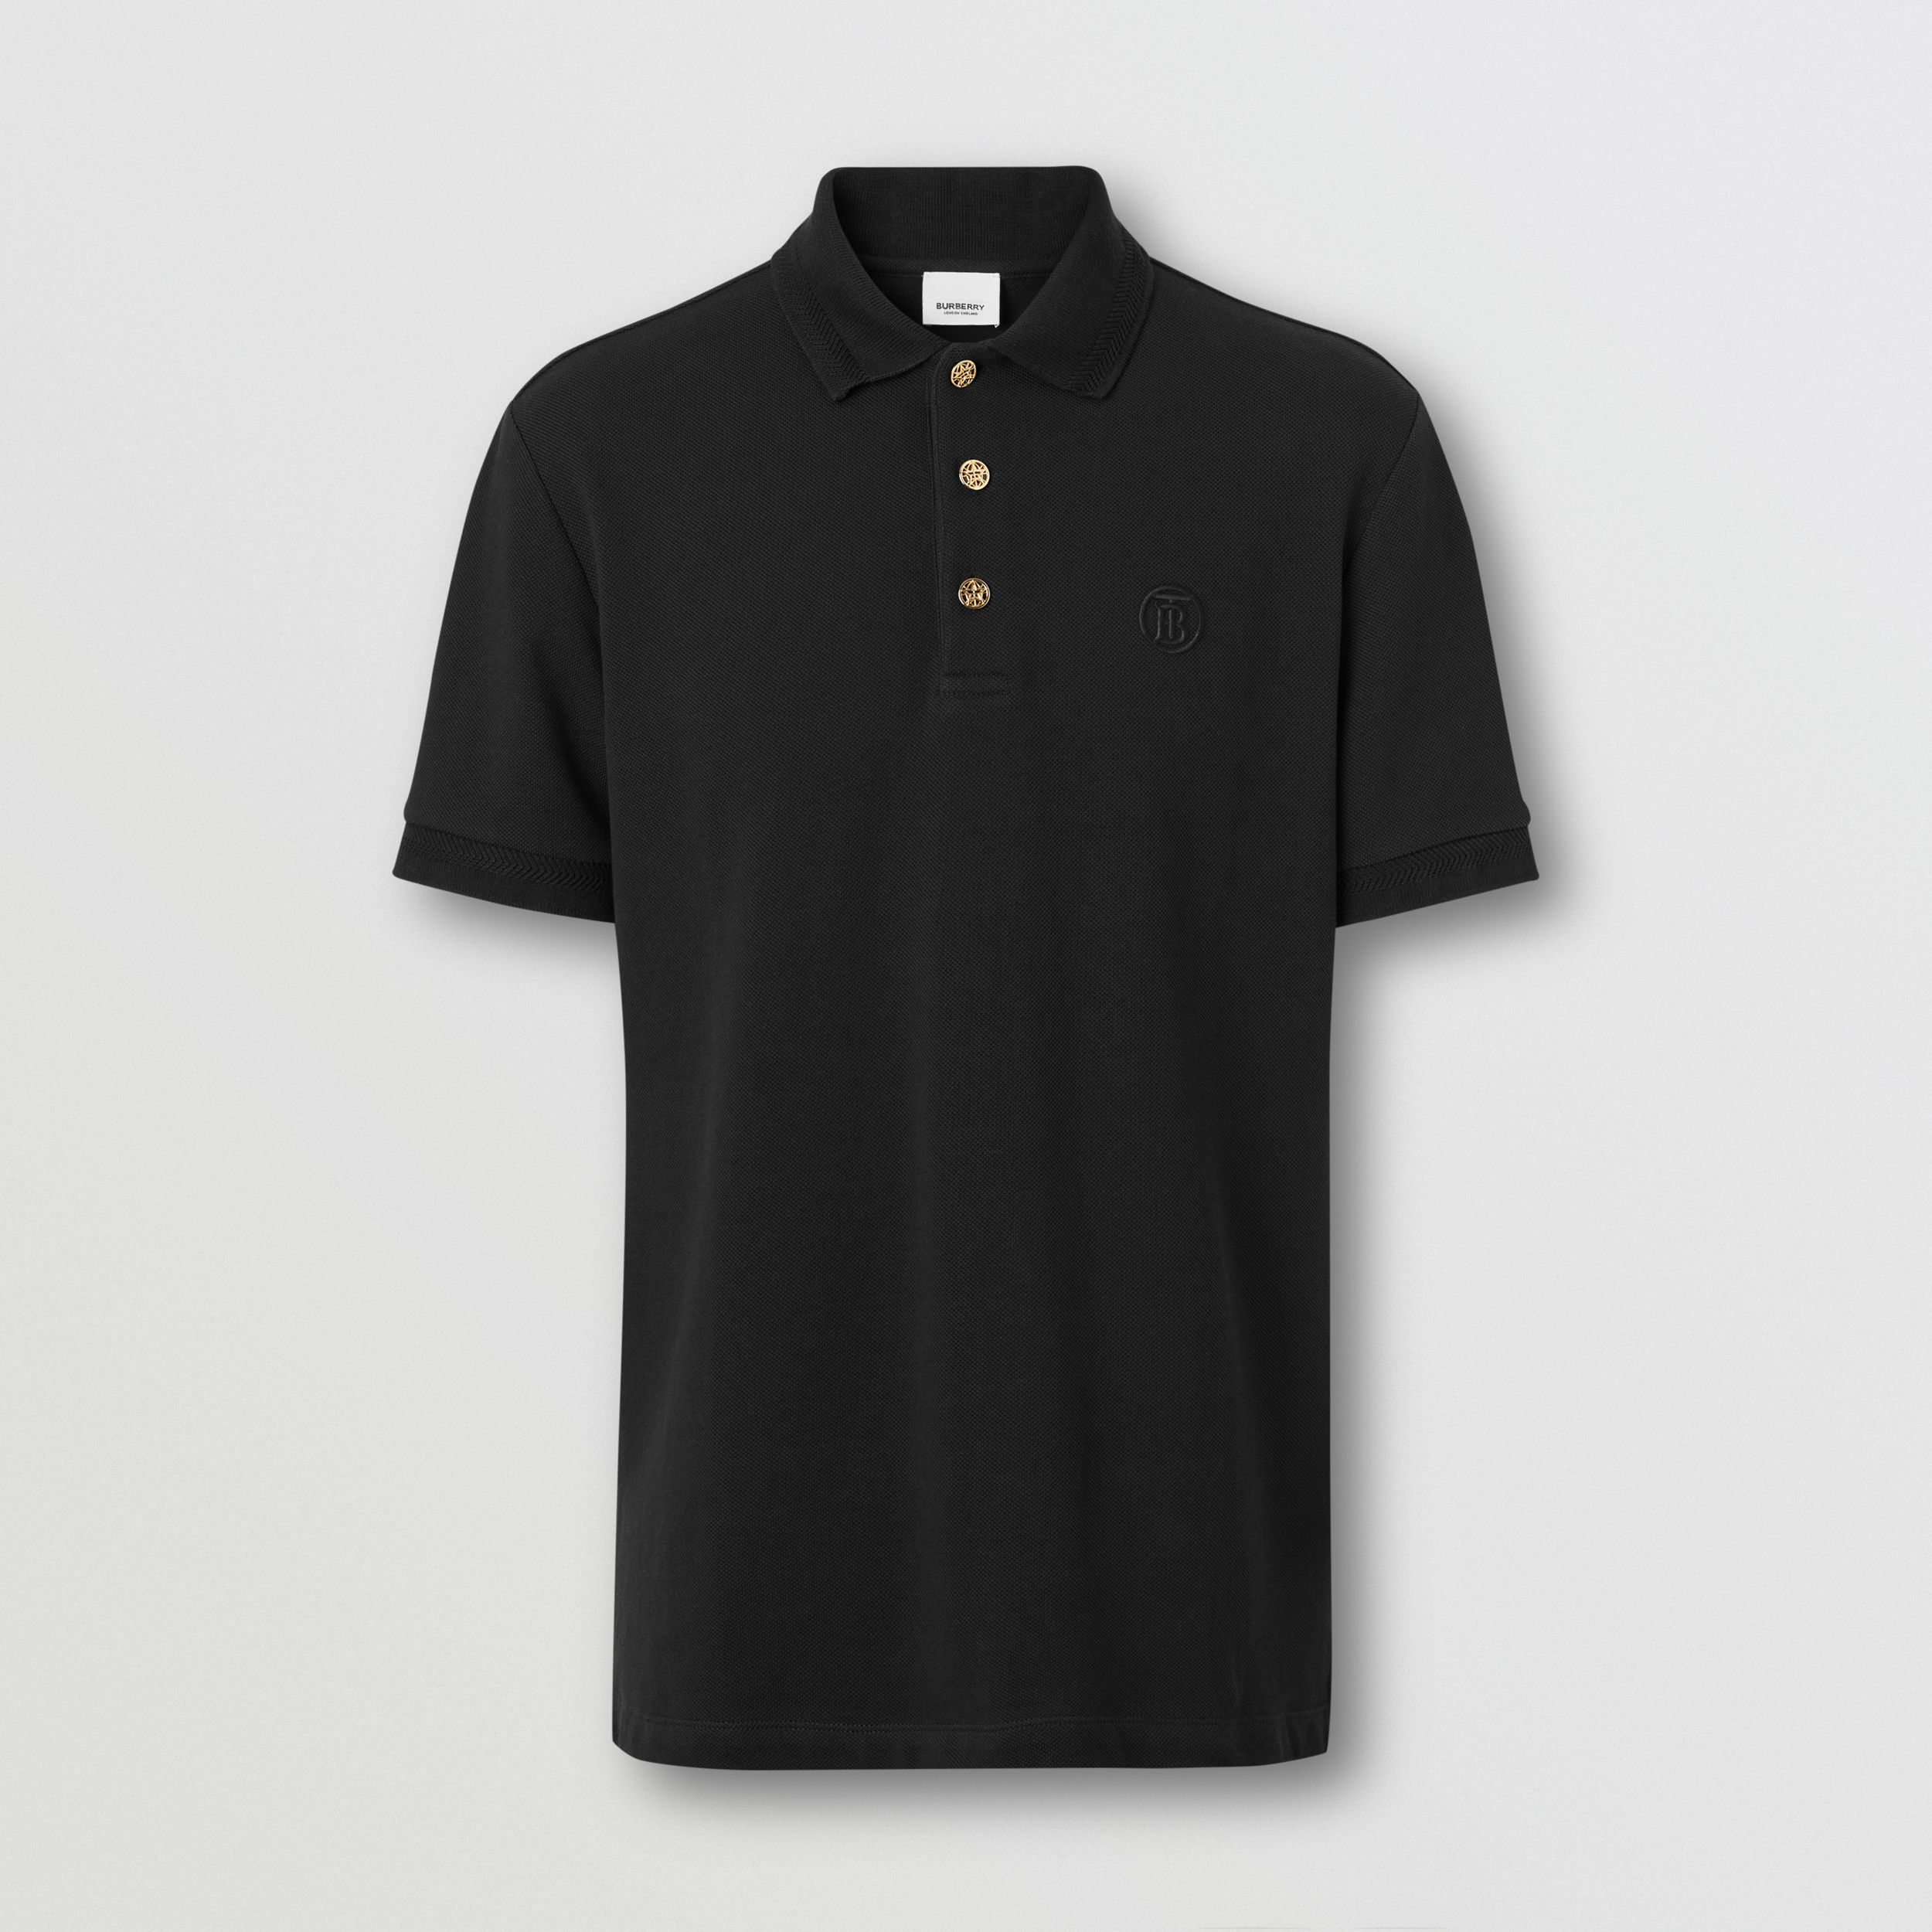 Button Detail Cotton Piqué Polo Shirt in Black - Men | Burberry - 1